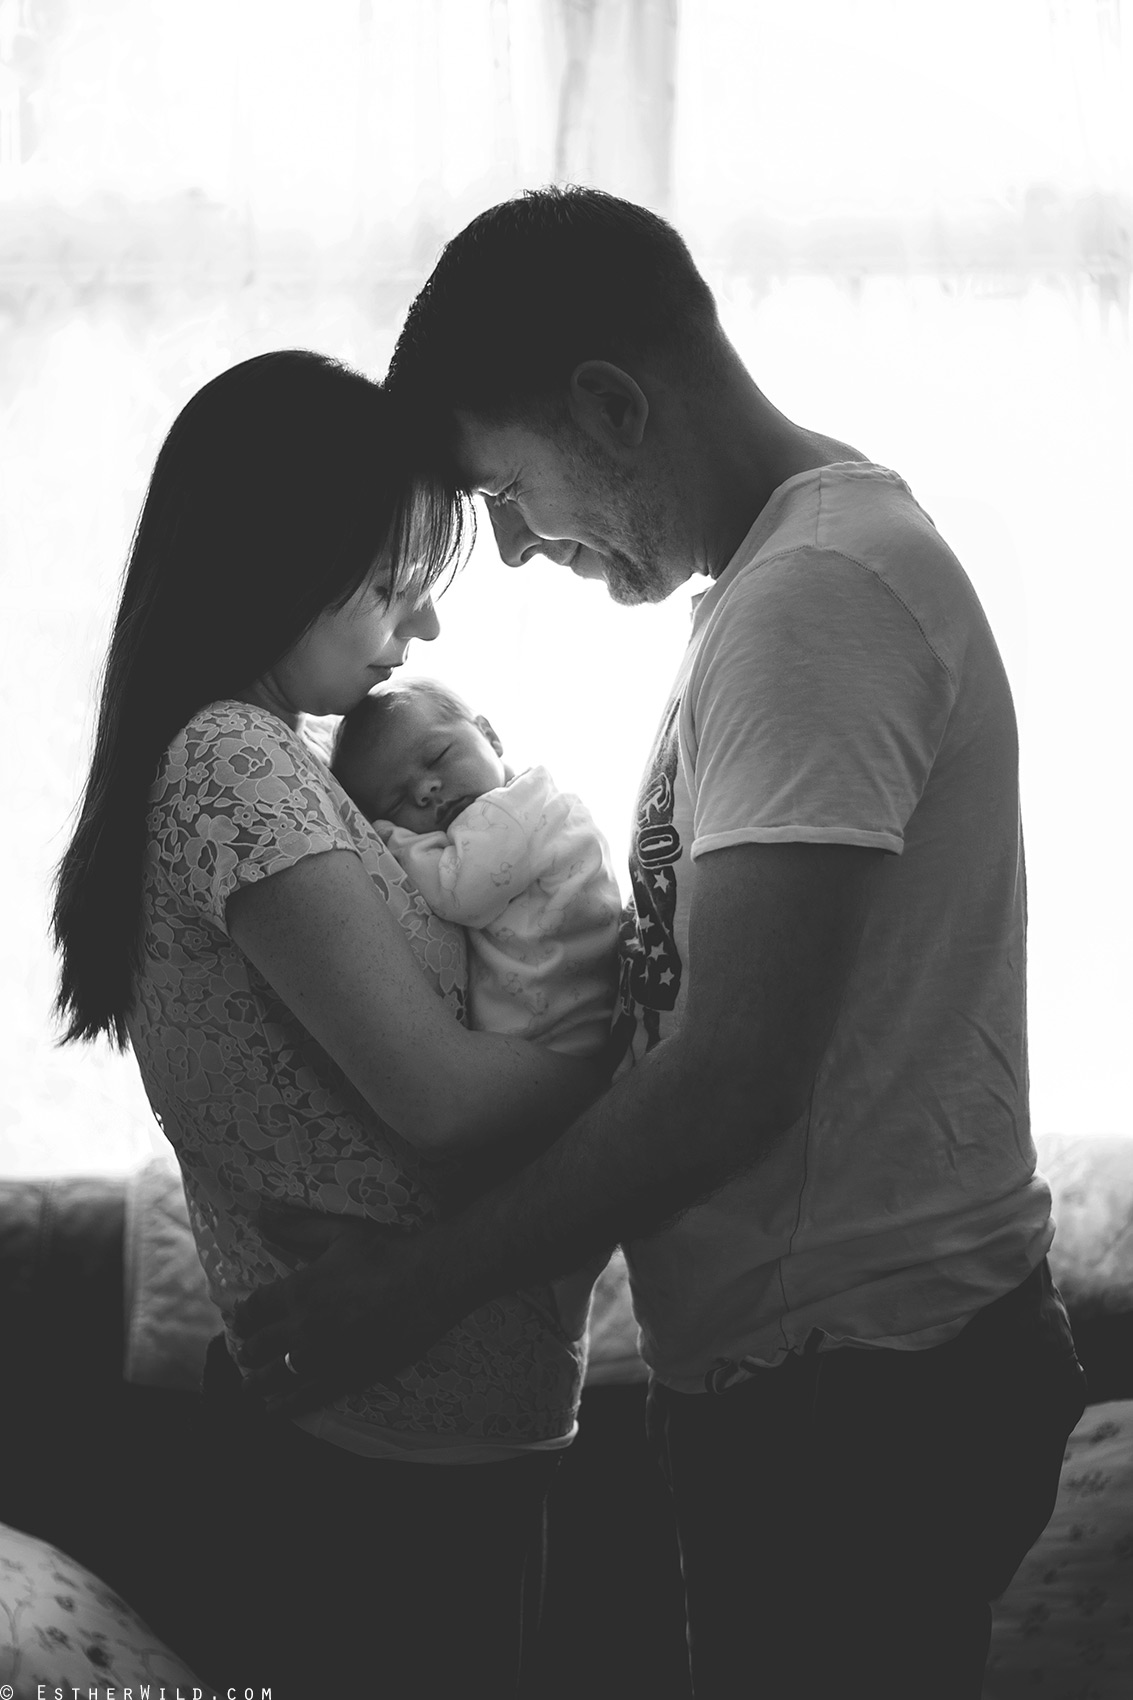 © Esther Wild Photographer, Newborn baby home photo session, natural light. Kings Lynn and West Norfolk, UK.